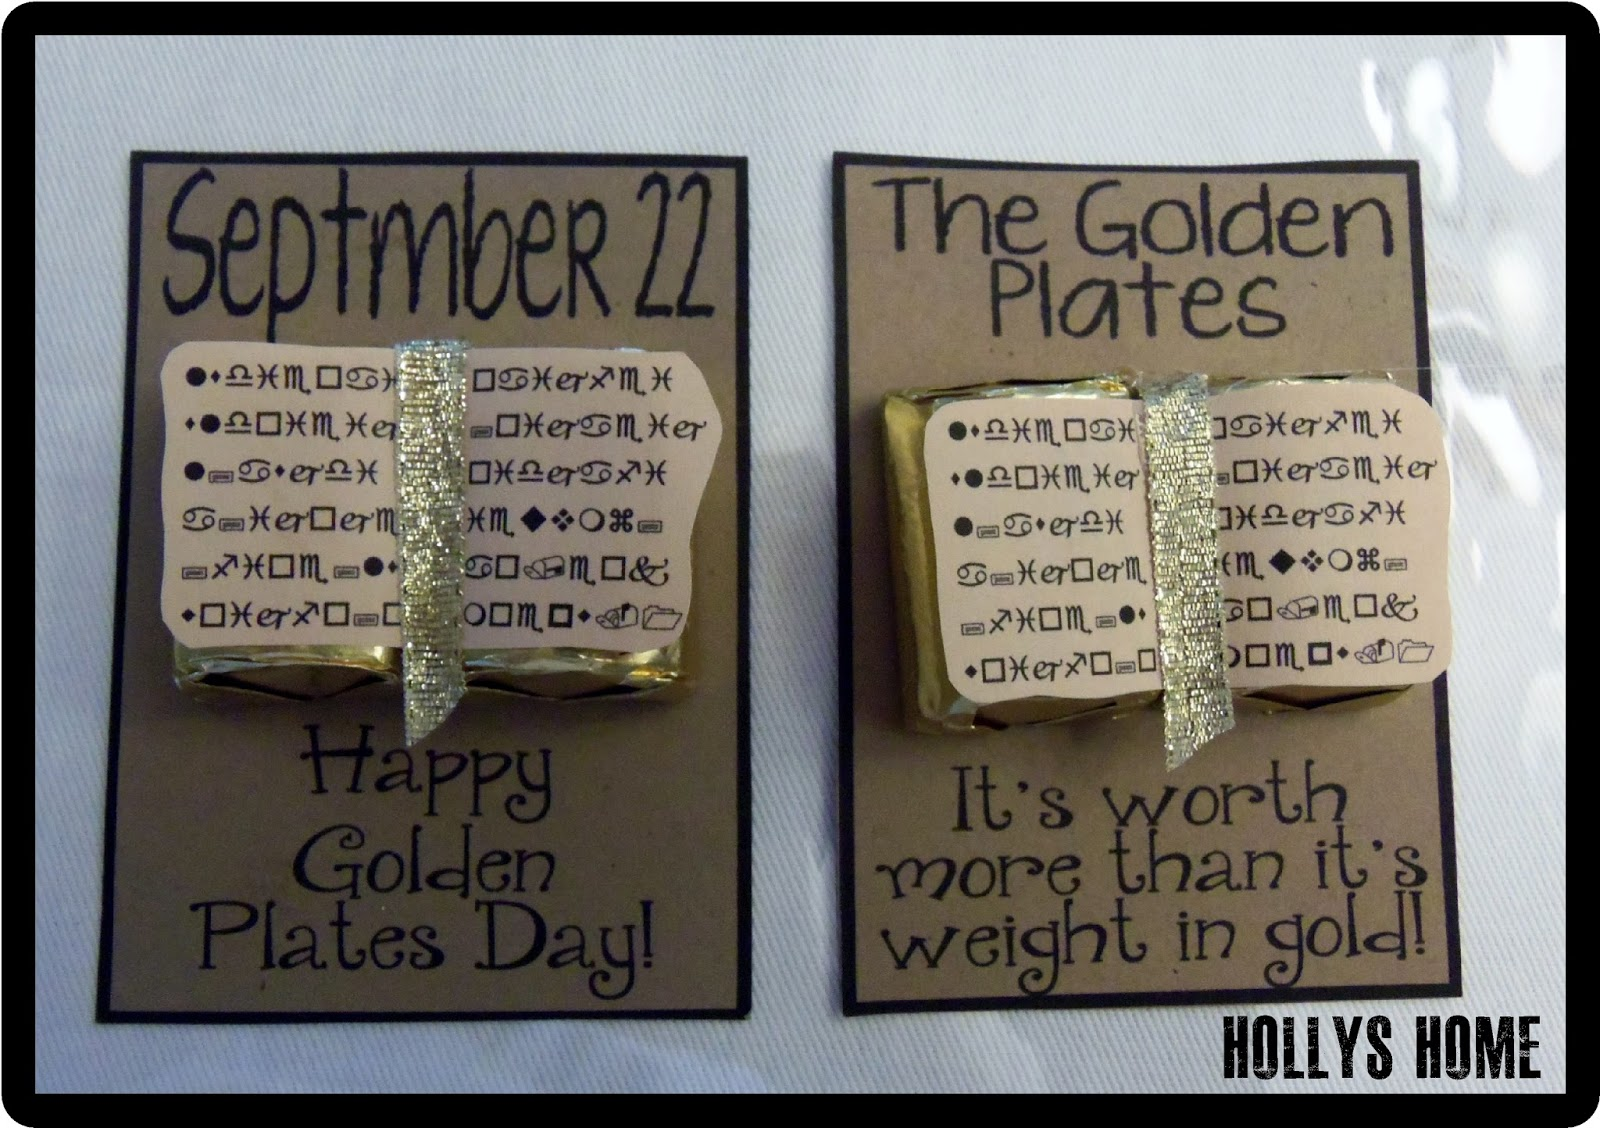 hollyshome church fun celebrate the golden plates with a